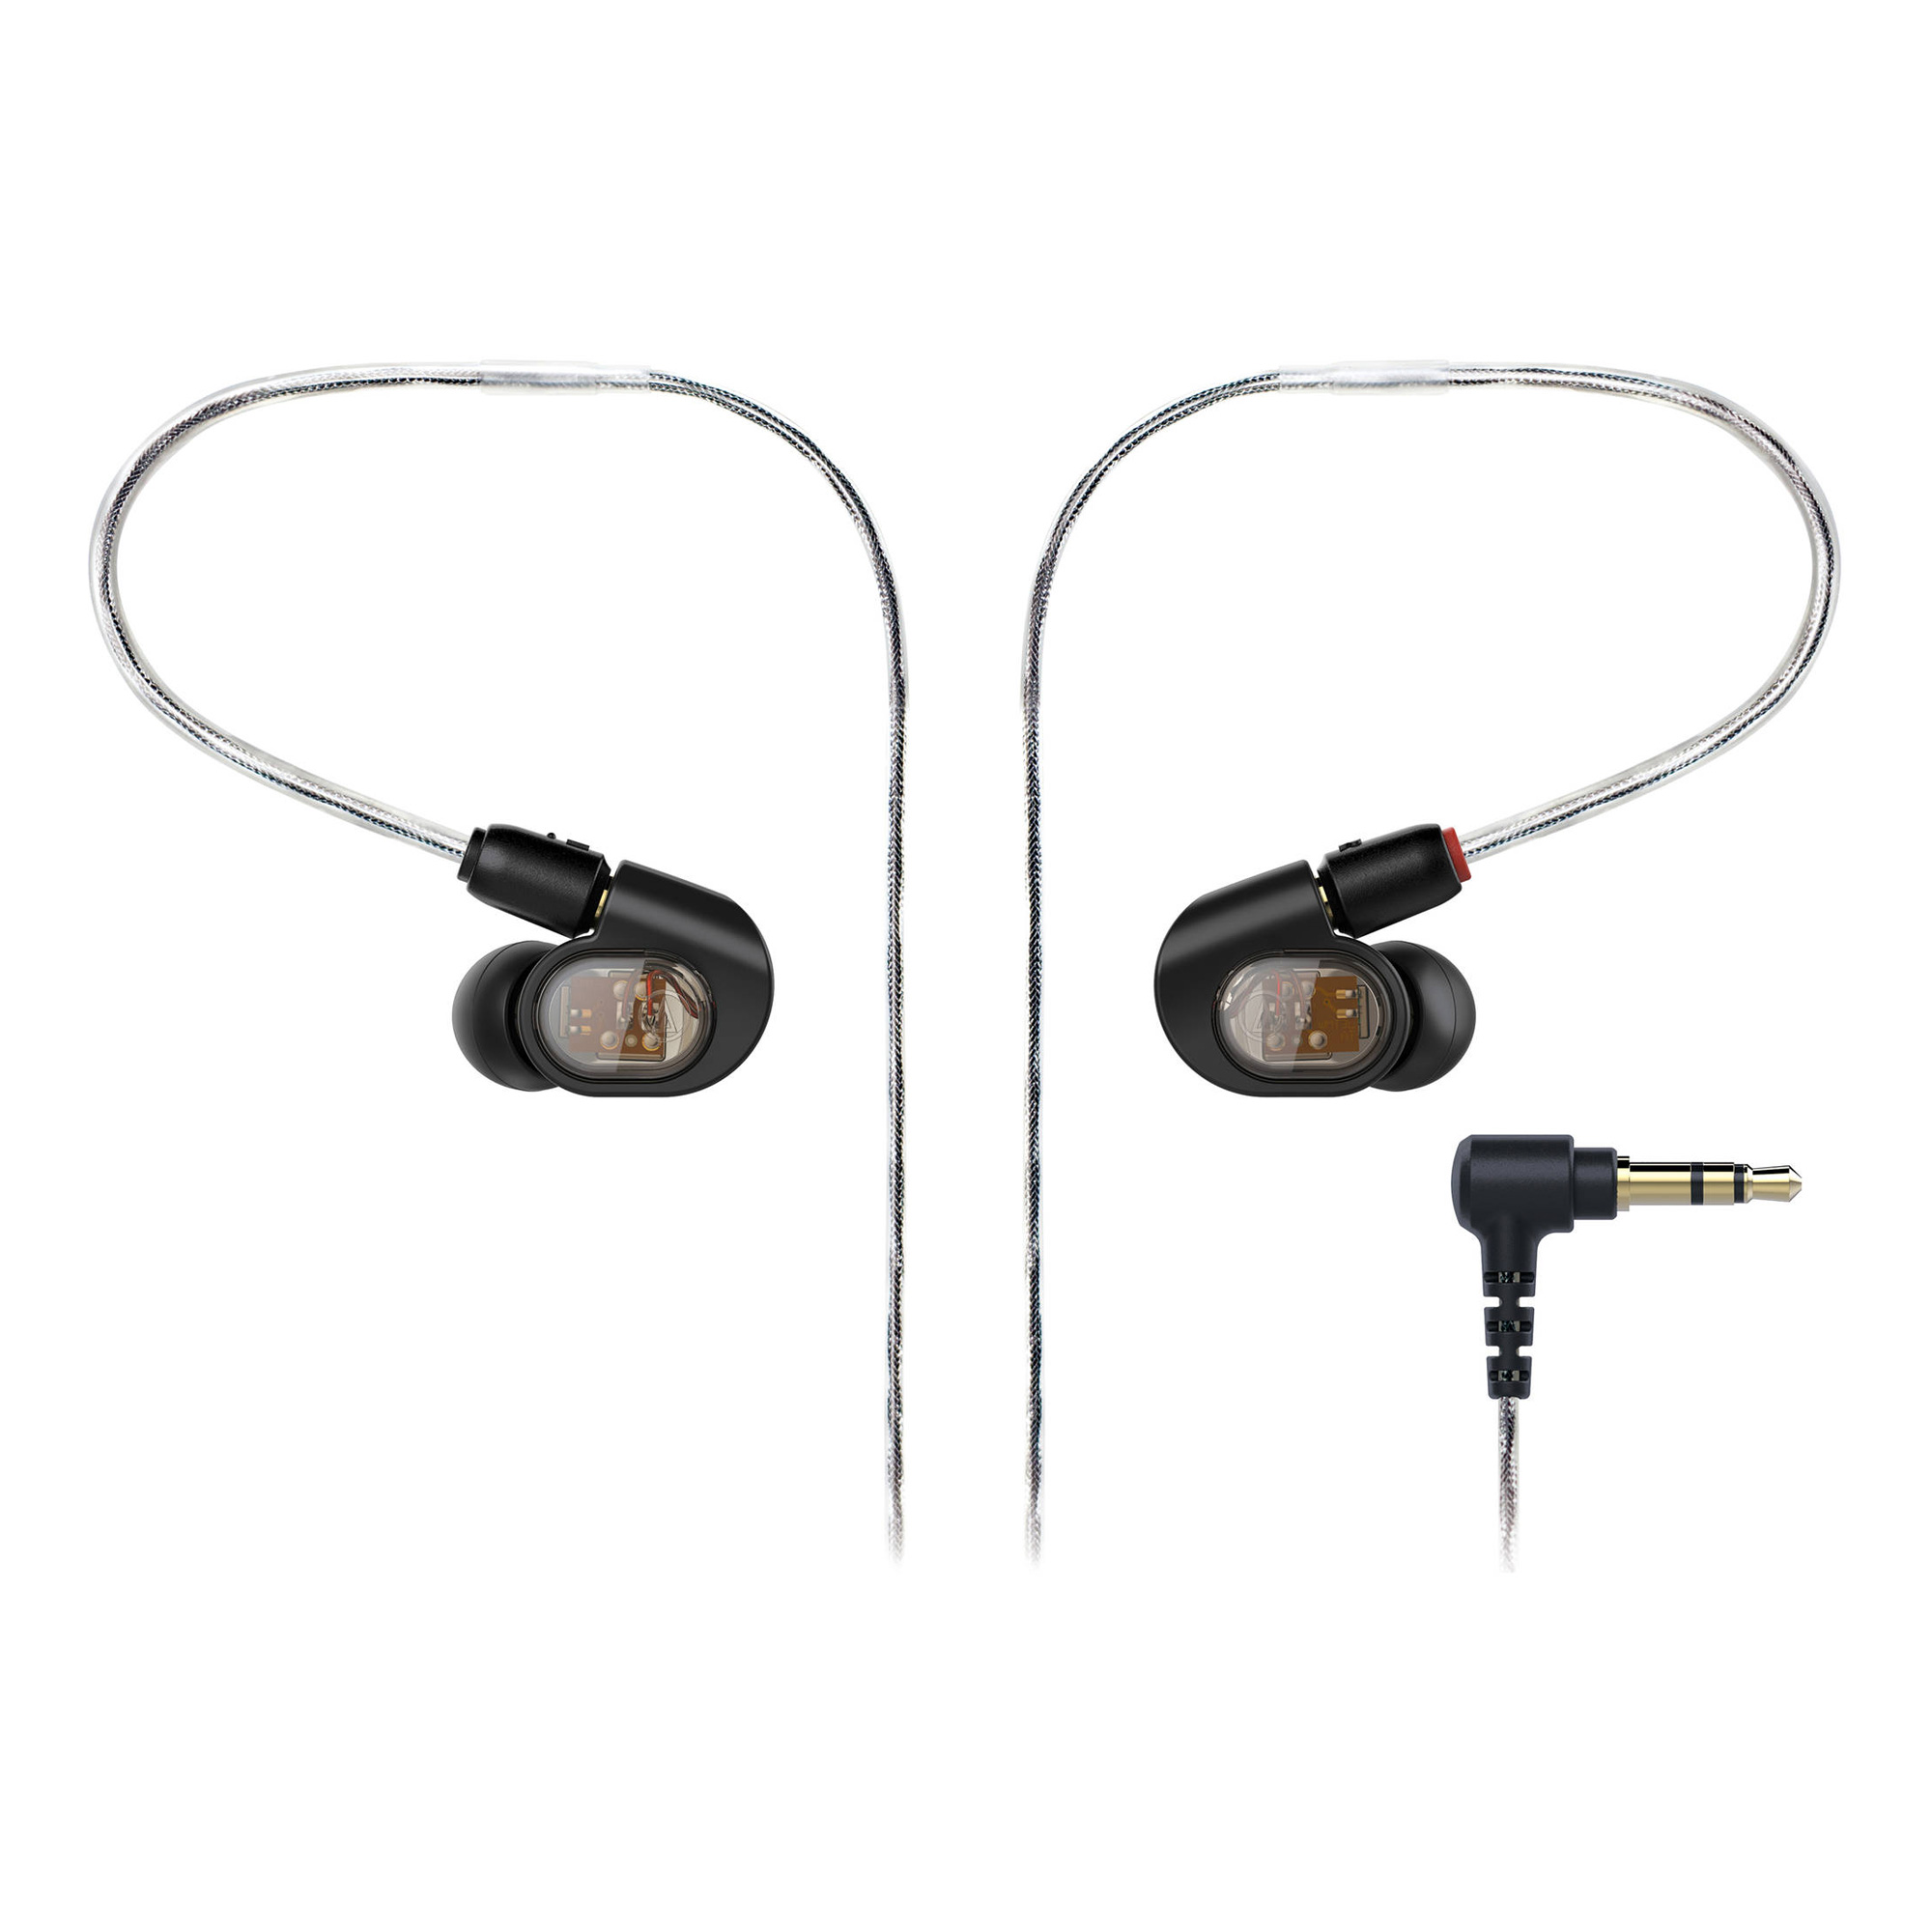 Professional In-Ear Monitor Headphones E70